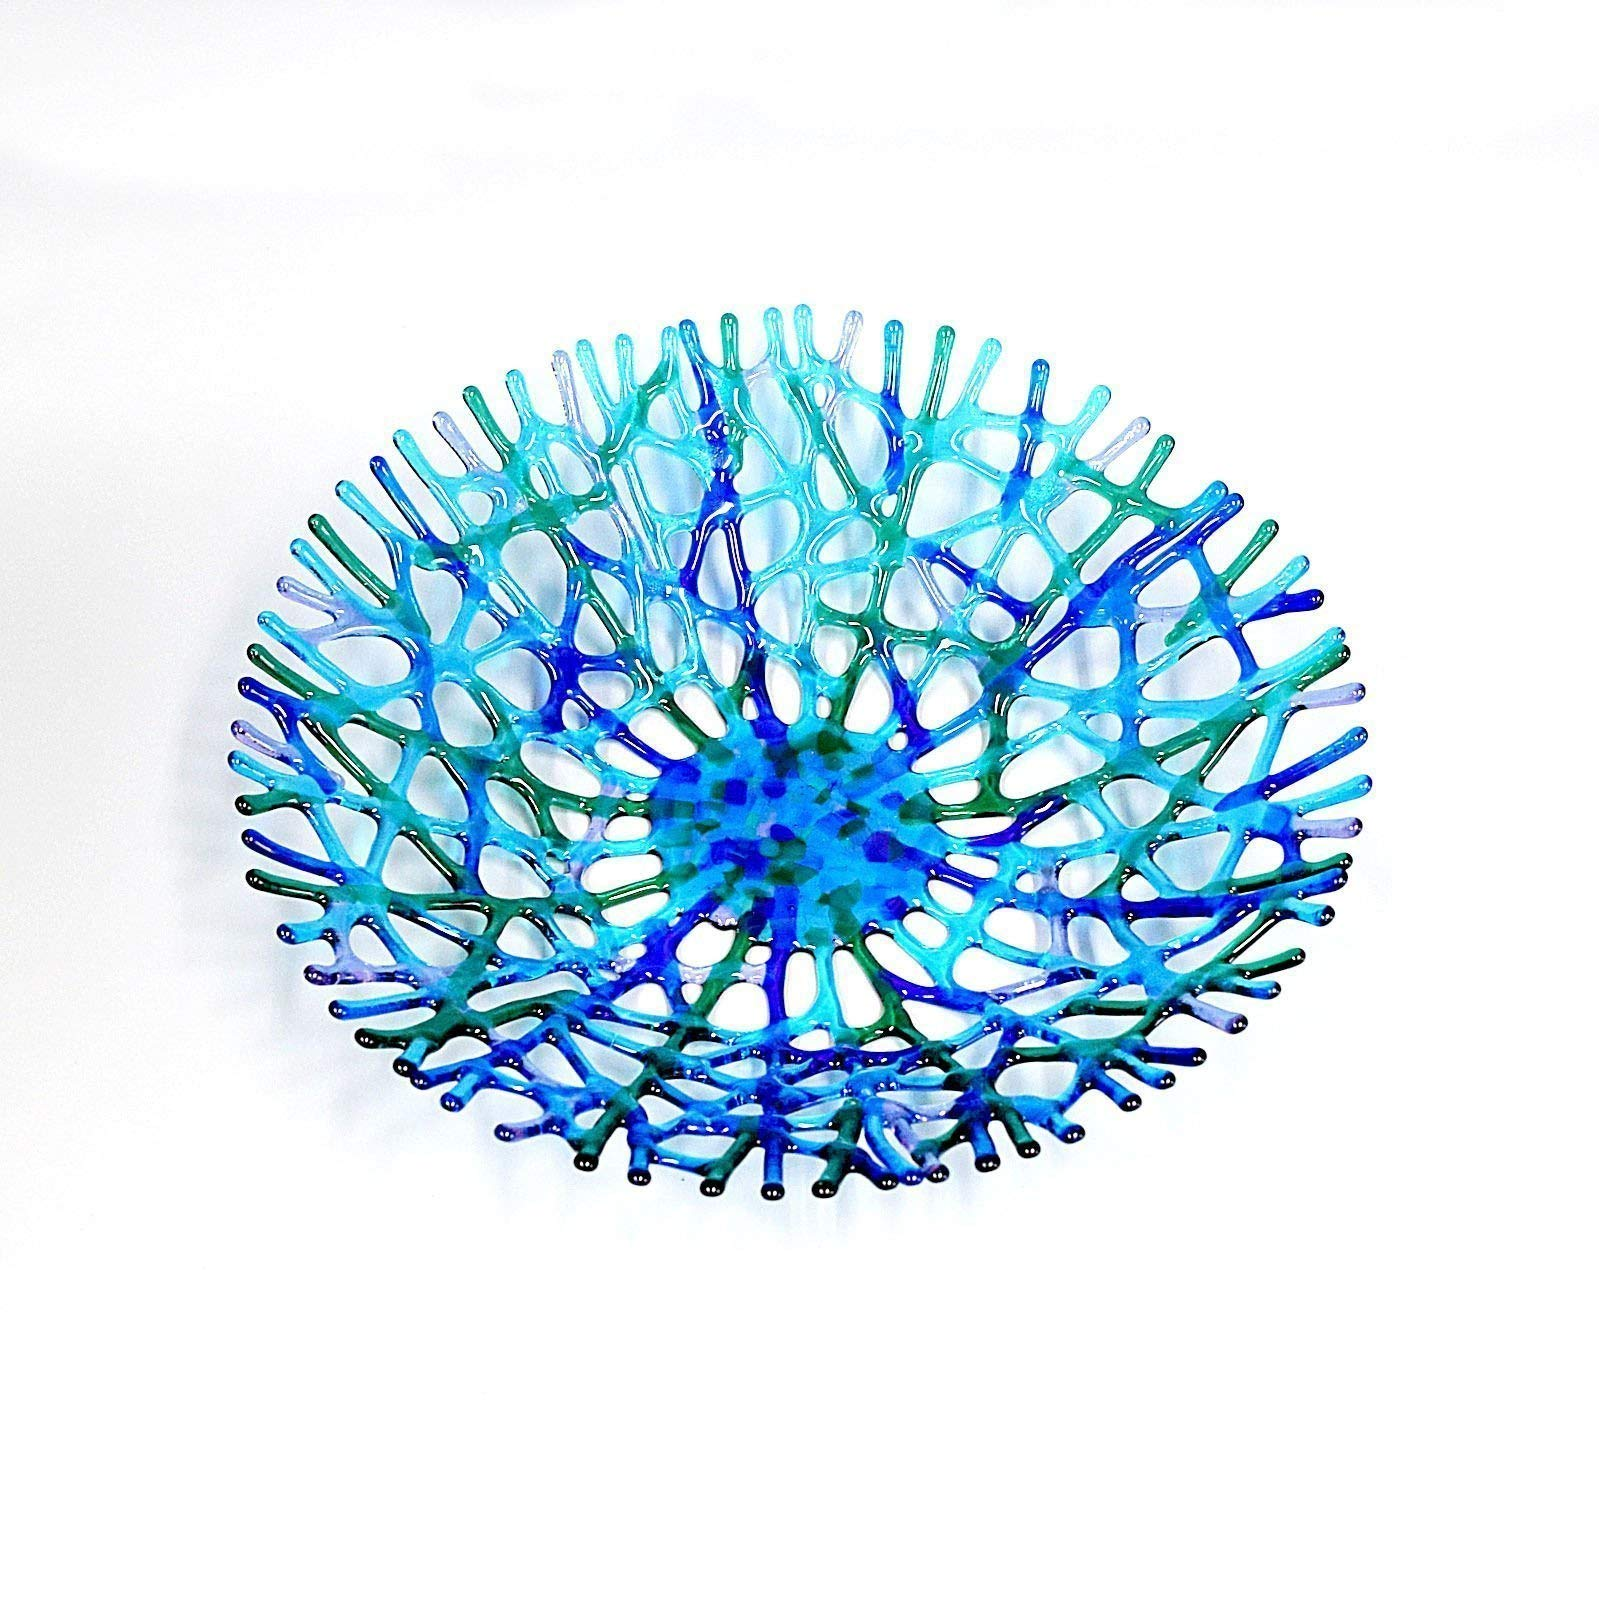 Lacy Glass Art Sea Coral Decorative Fruit Bowl 14'' in Turquoise Blue Lavender Aquamarine Green